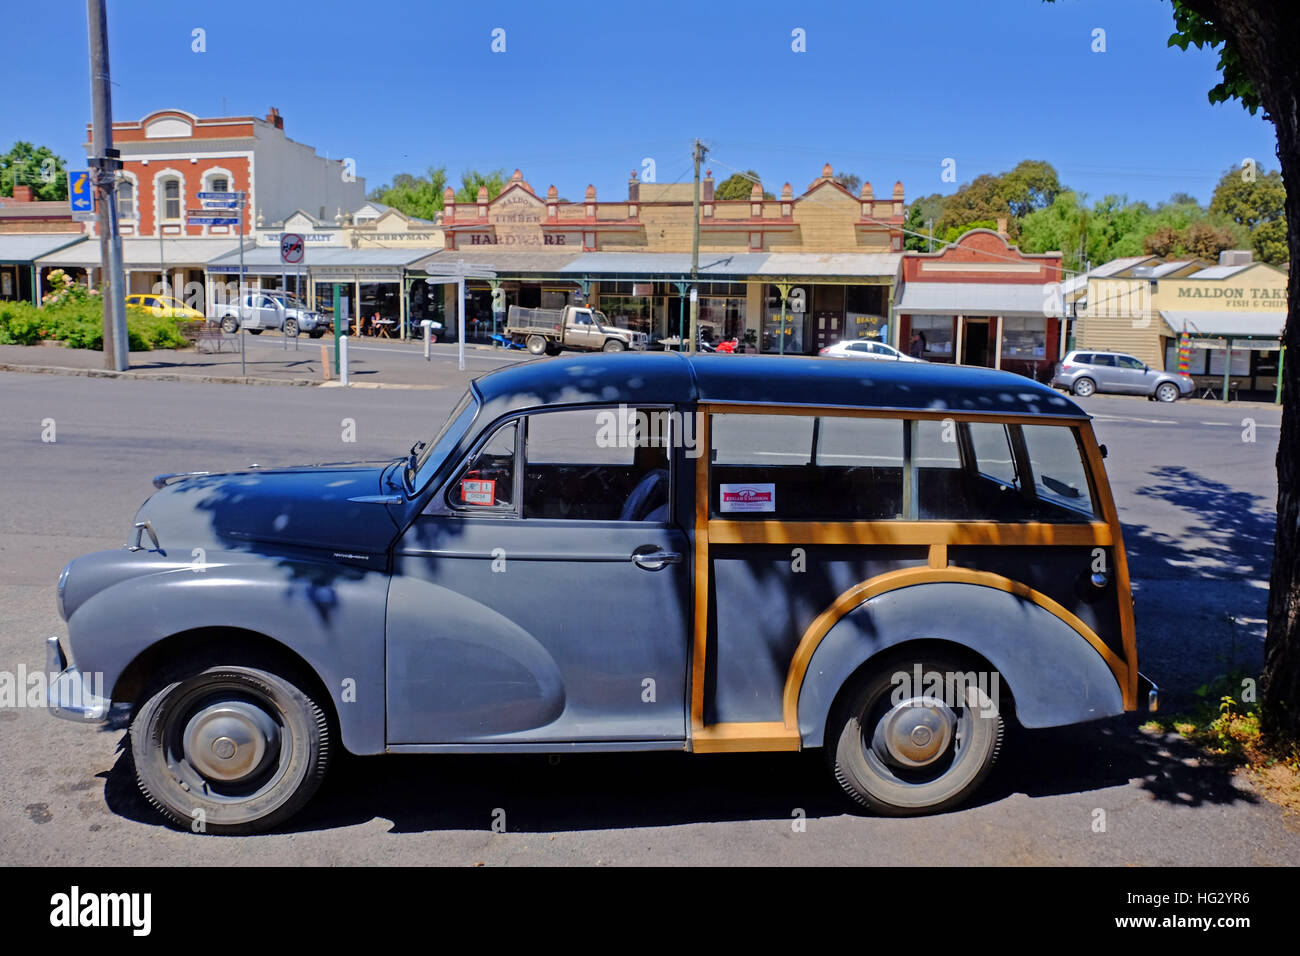 A Morris Traveller car in Maldon, a historic town in Victoria's Goldfields region, Australia - Stock Image